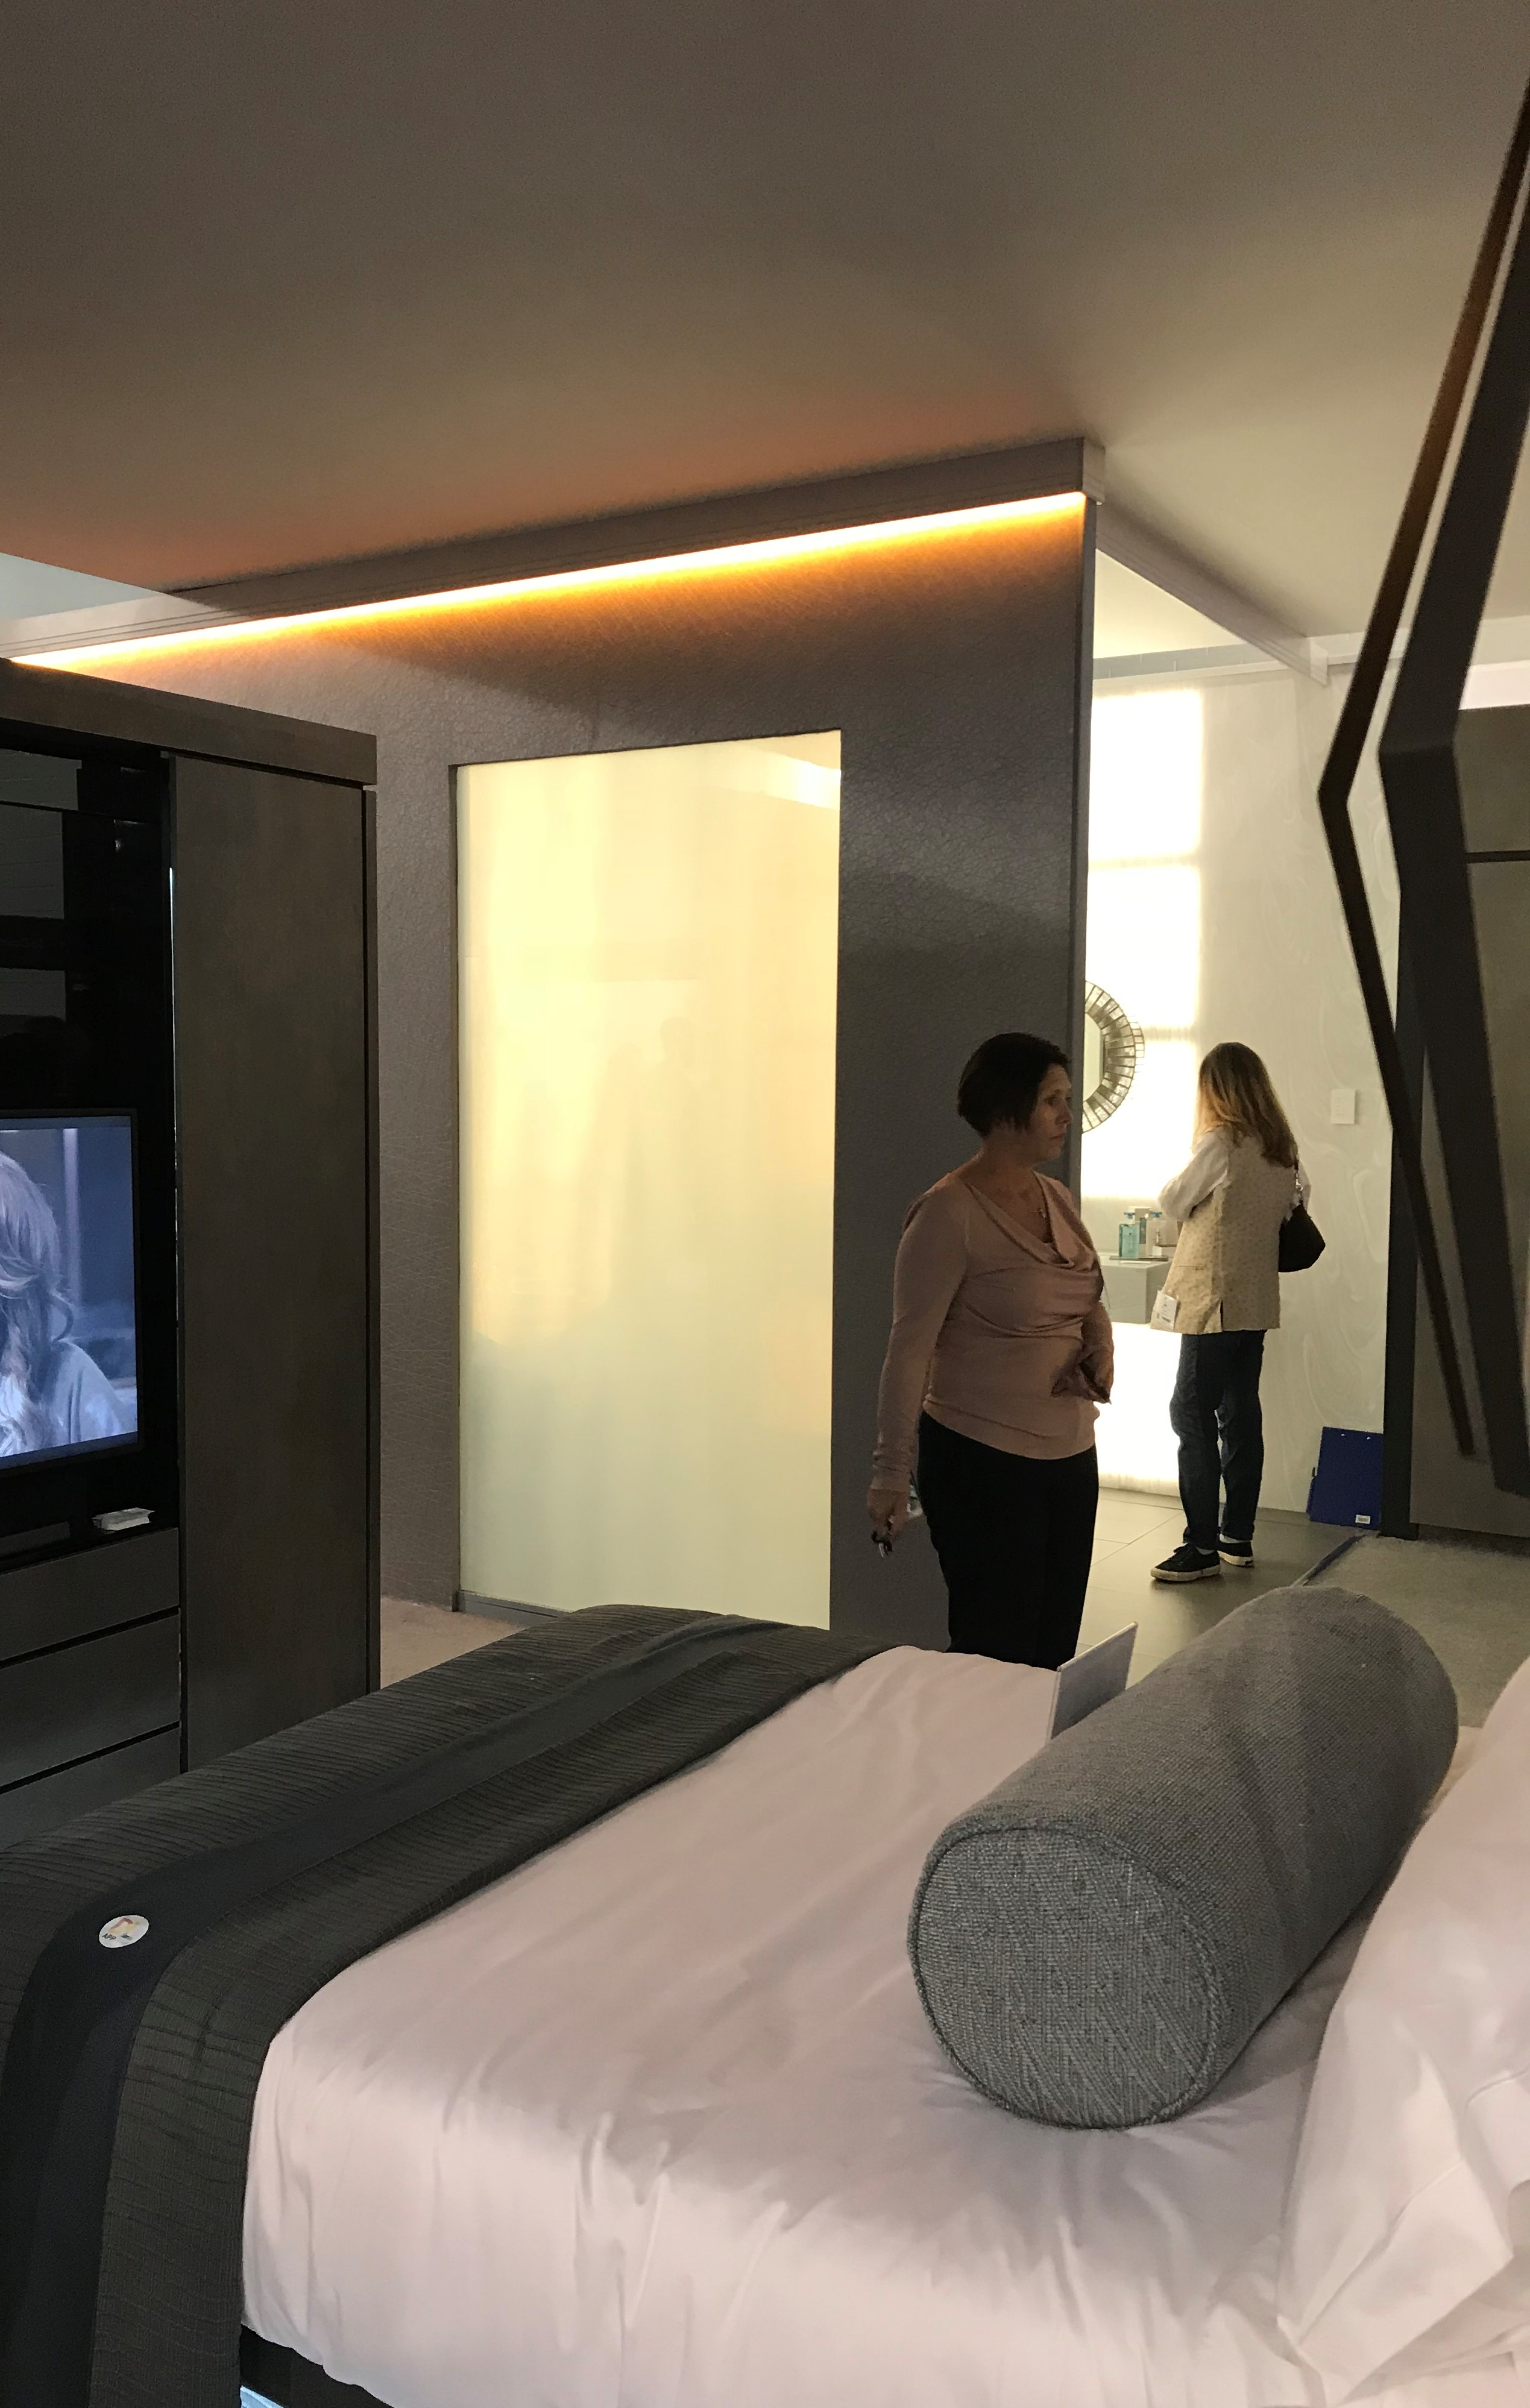 Privacy Glass in Hotel Room of The Future Exhibition